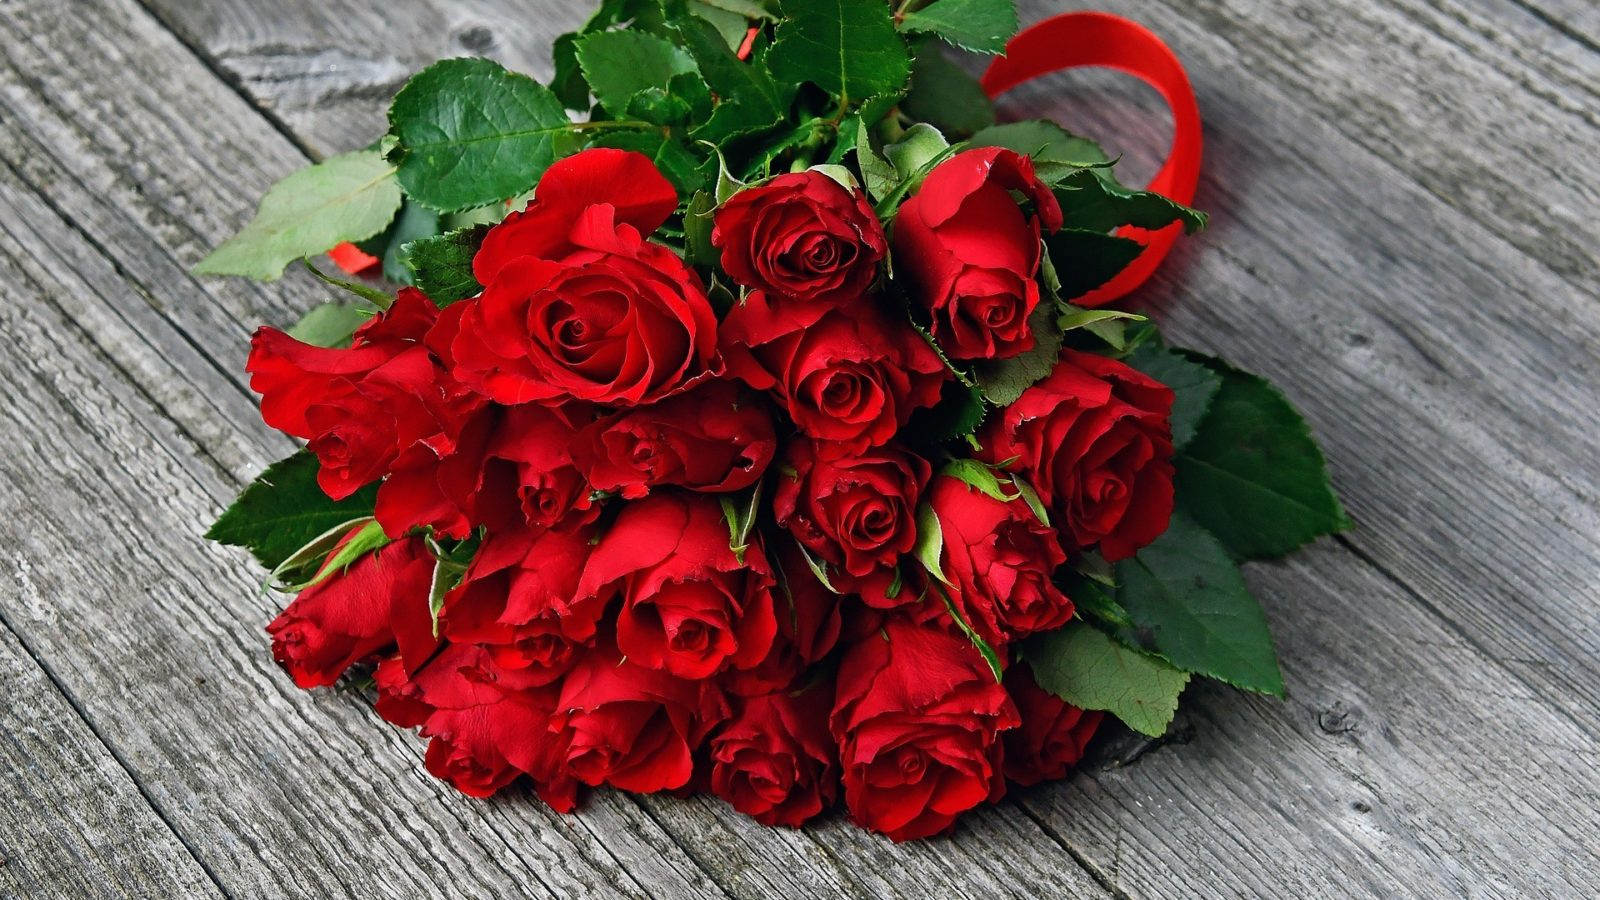 Boquet of red roses for Valentines Day.